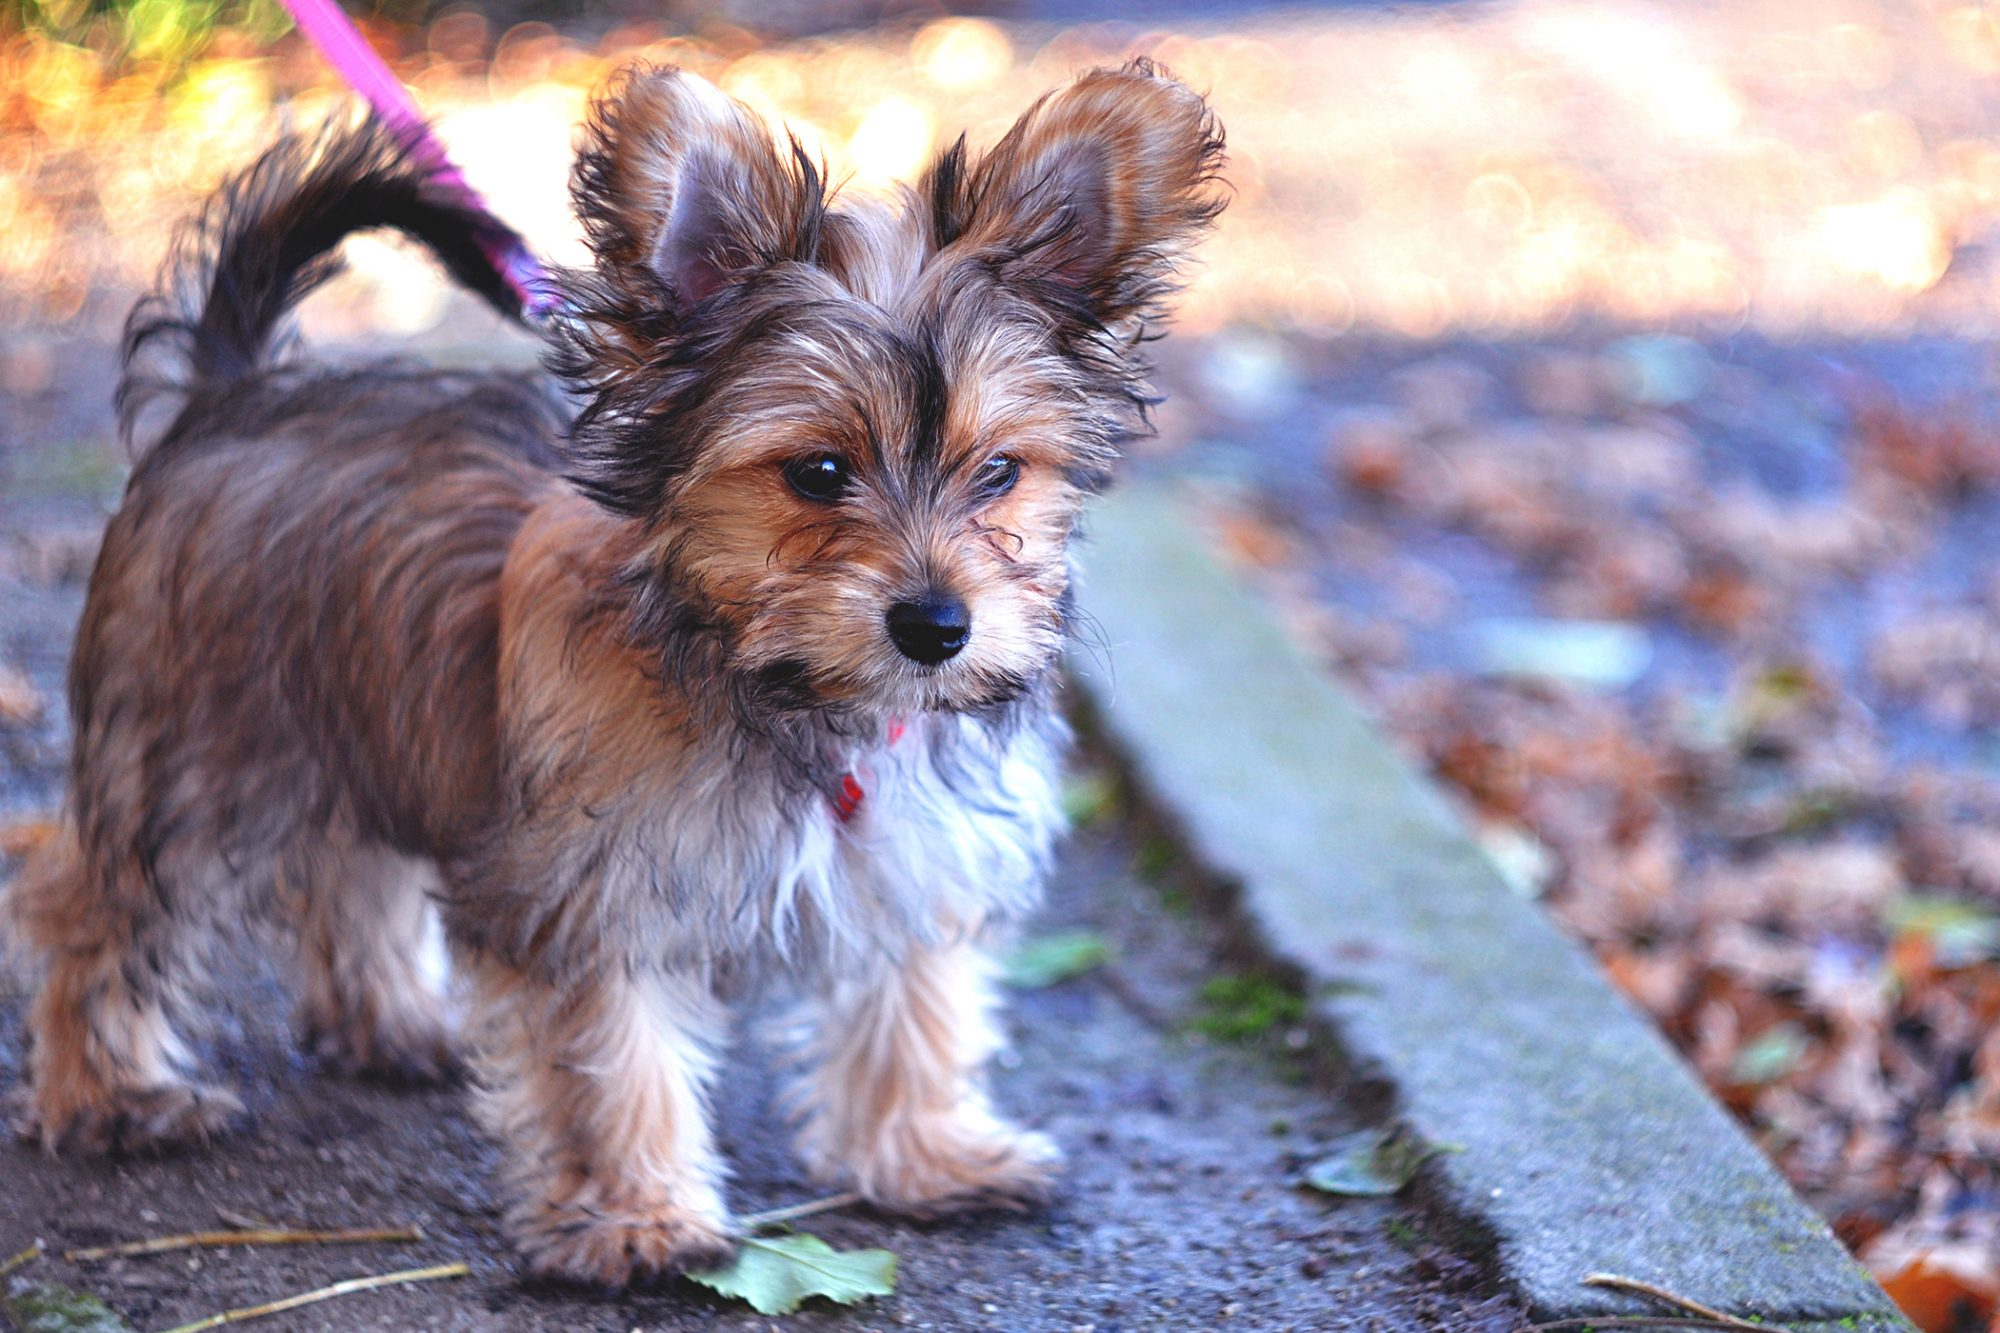 chorkie on pink leash standing on a sidewalk next to fallen leaves